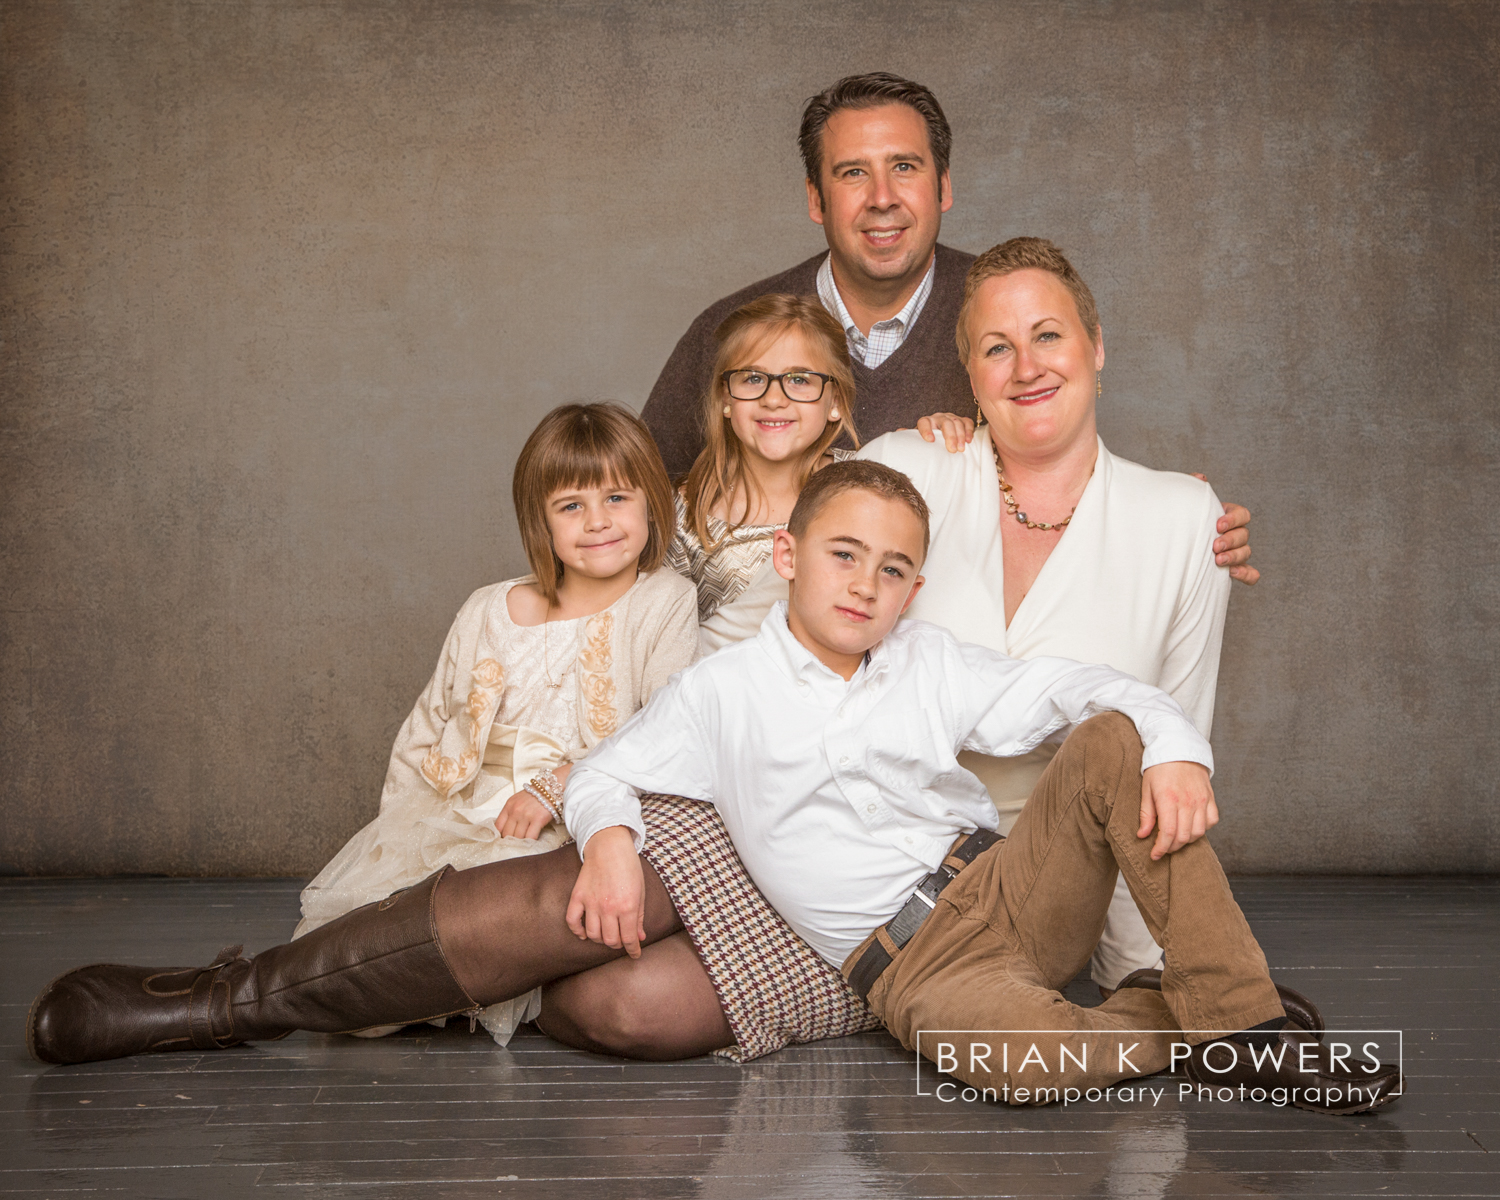 Portrait-Website McBride-Family_portrait_with_children-003.jpg